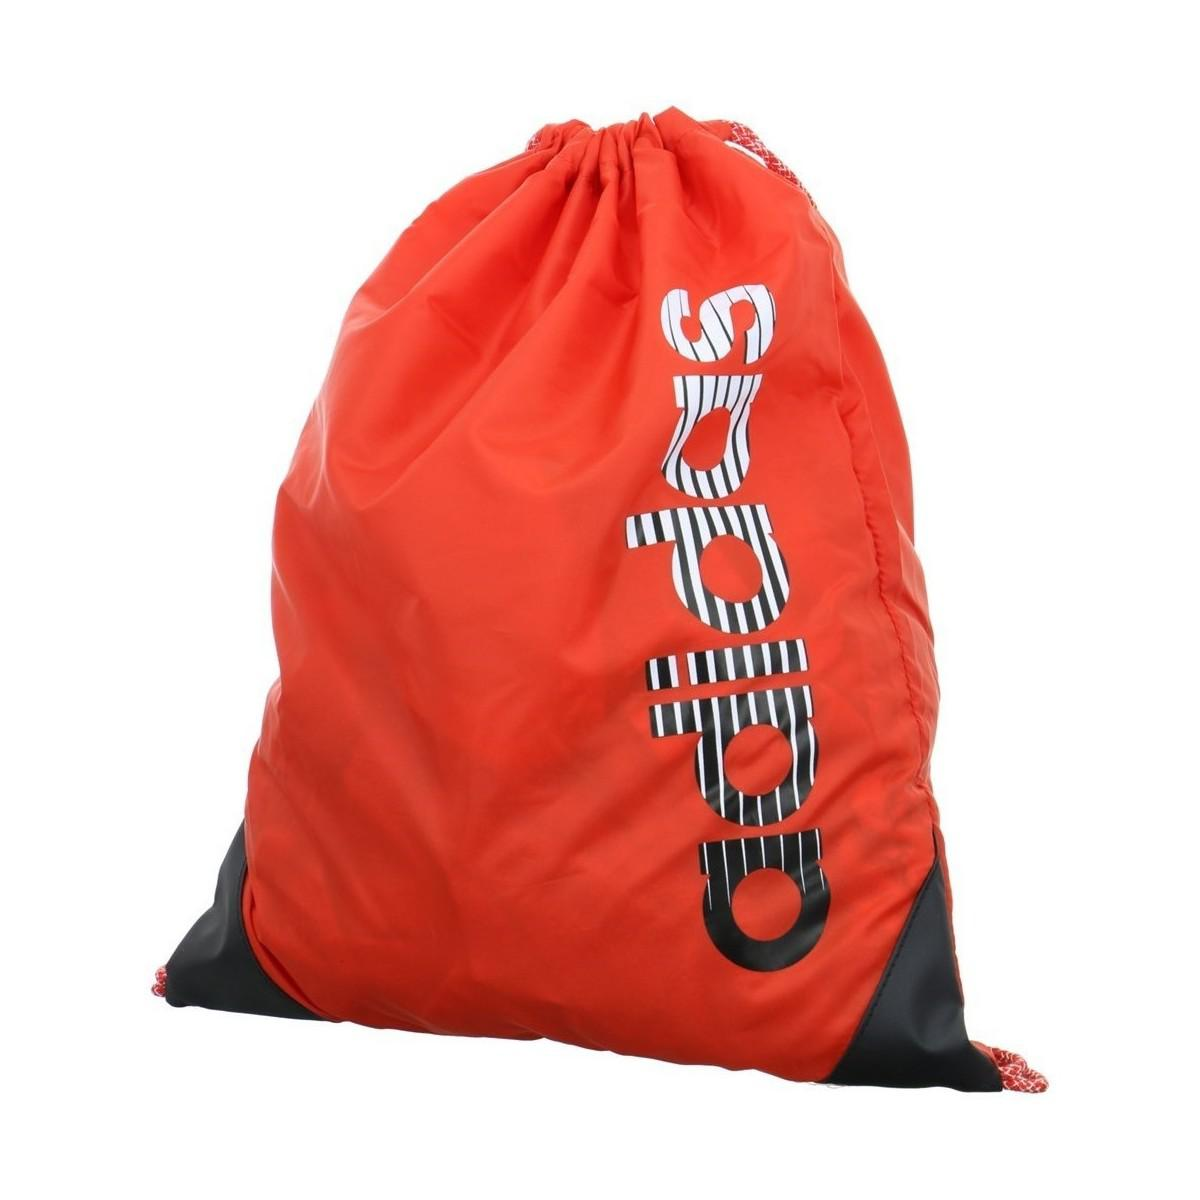 7c31462b605 Adidas Gs Neopark Sportbeutel Men s Backpack In Red in Red for Men ...